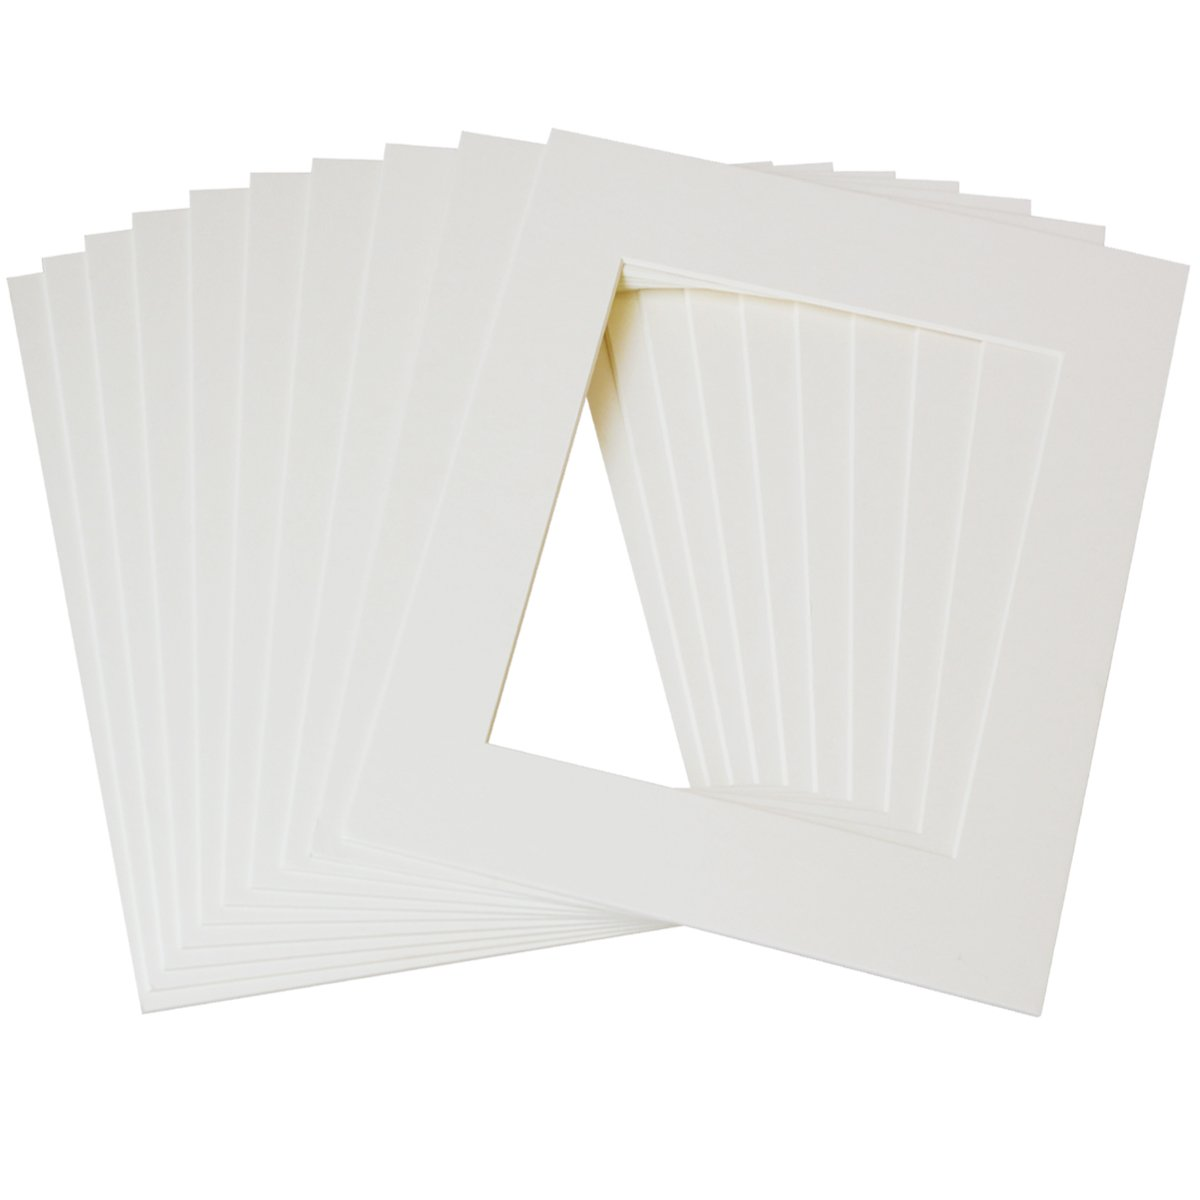 Pack of 10 White Core Bevel Cut for 8x10 Pictures Betus 11x14 Cream White Picture Mats